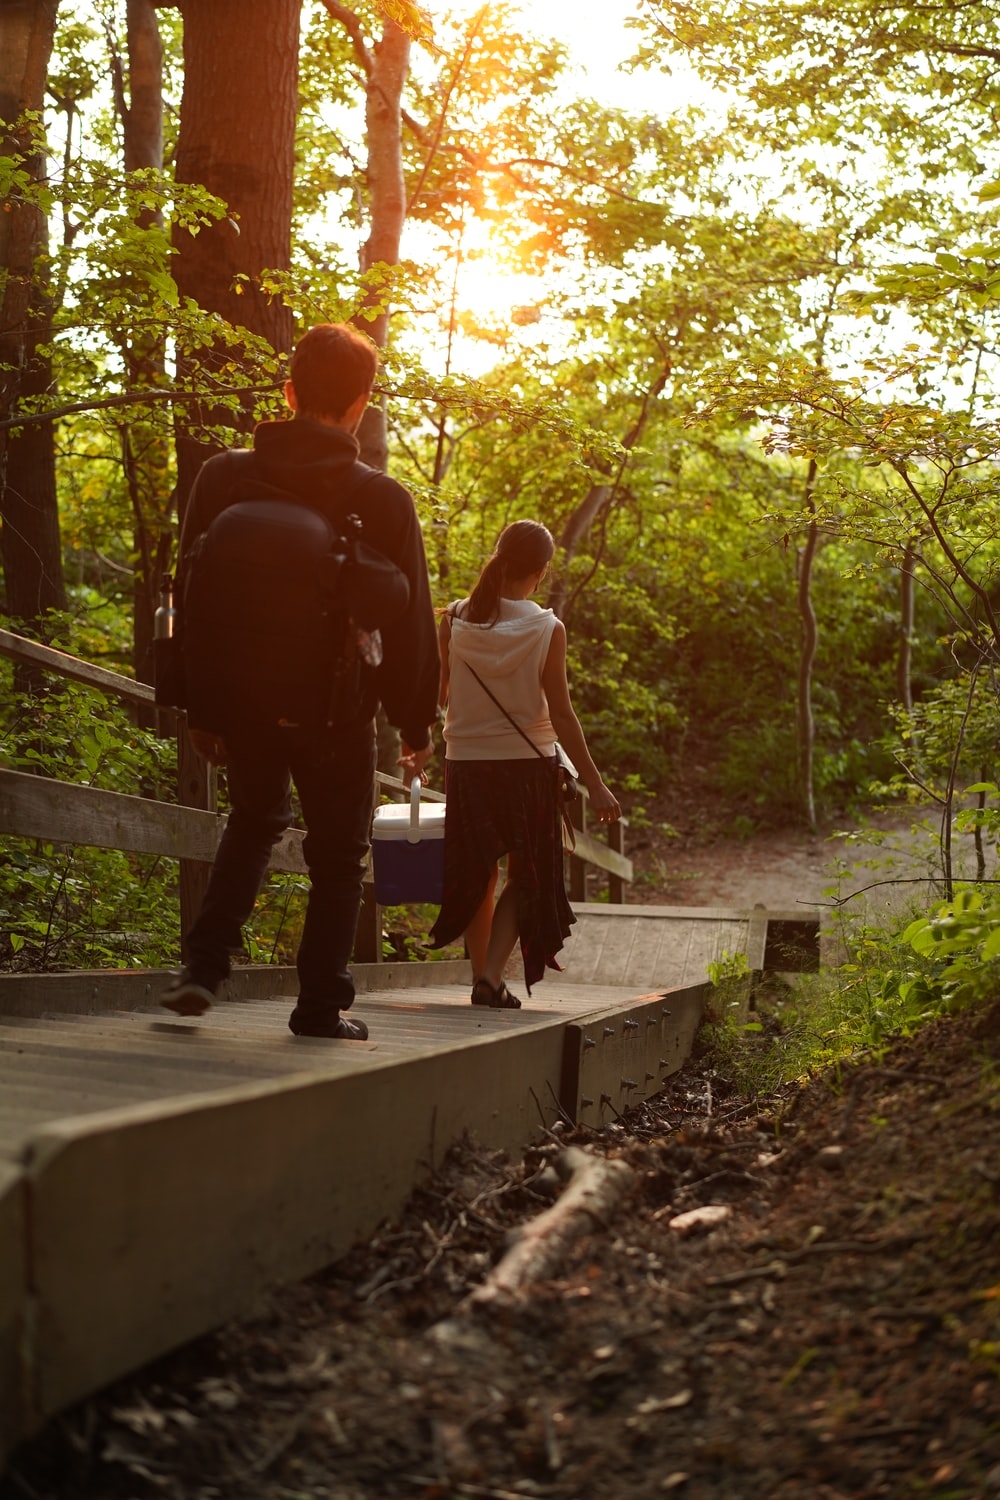 man and woman walking on pathway between trees during daytime